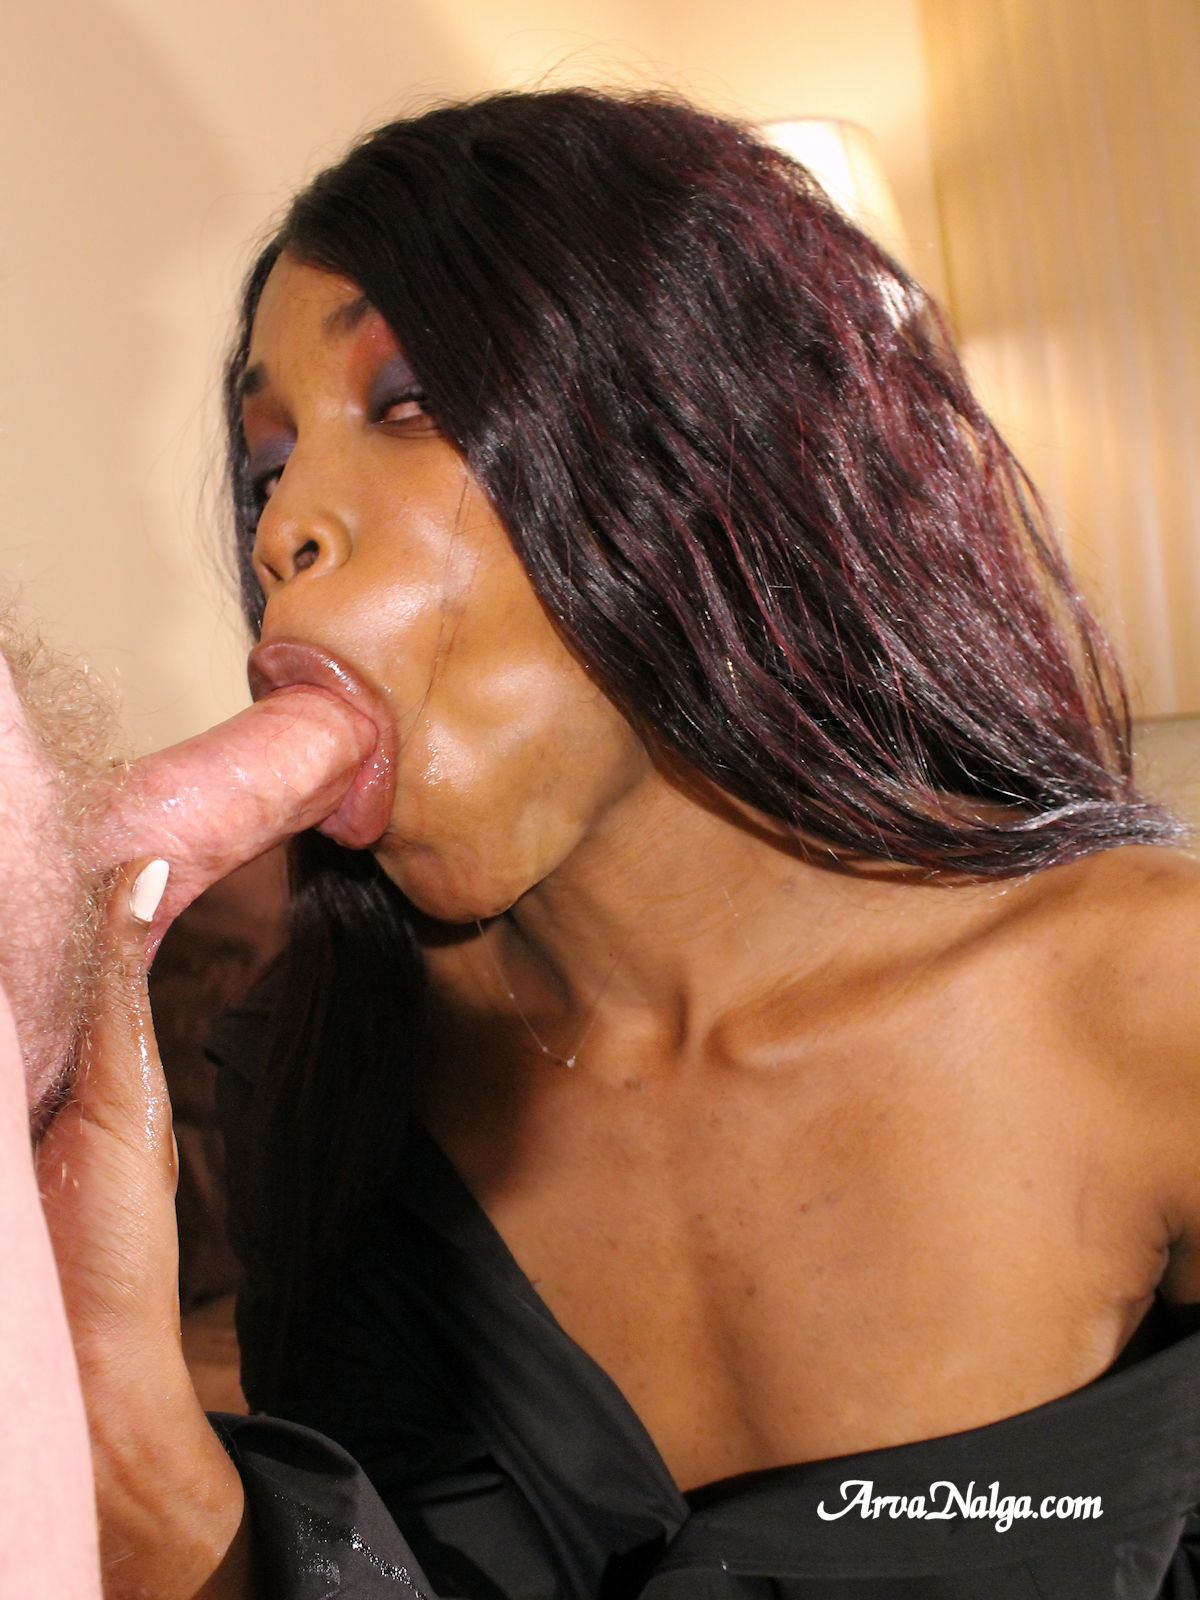 Two black chicks jerking a white dick